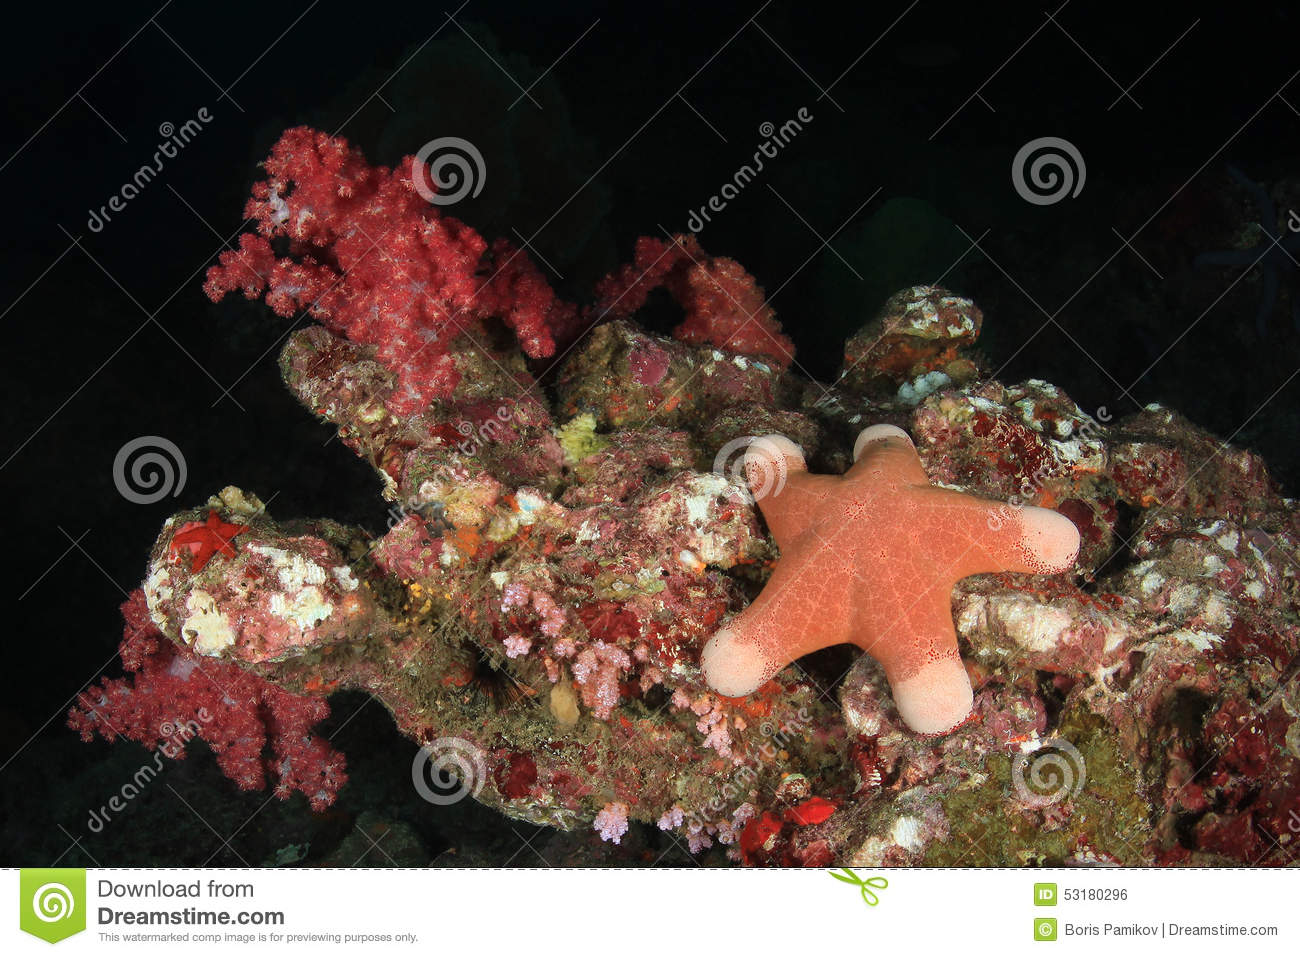 Starfish under water on bottom of Andaman sea, Thailand